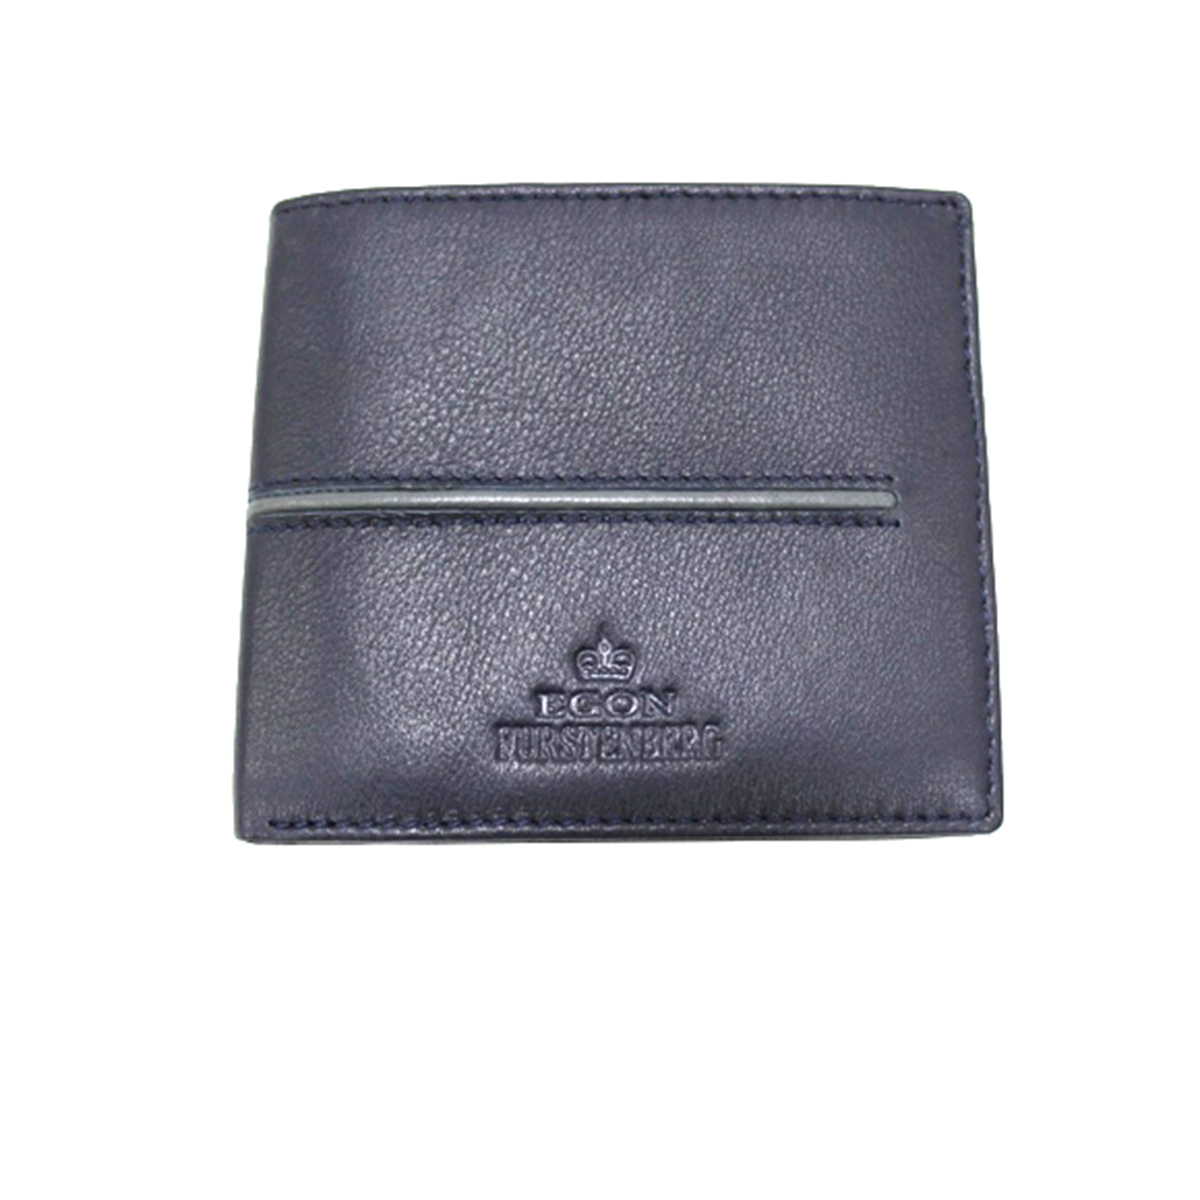 cheap for discount available cheap sale Men's leather wallet no coin purse credit card holder Egon Furstenberg  514-4 blu